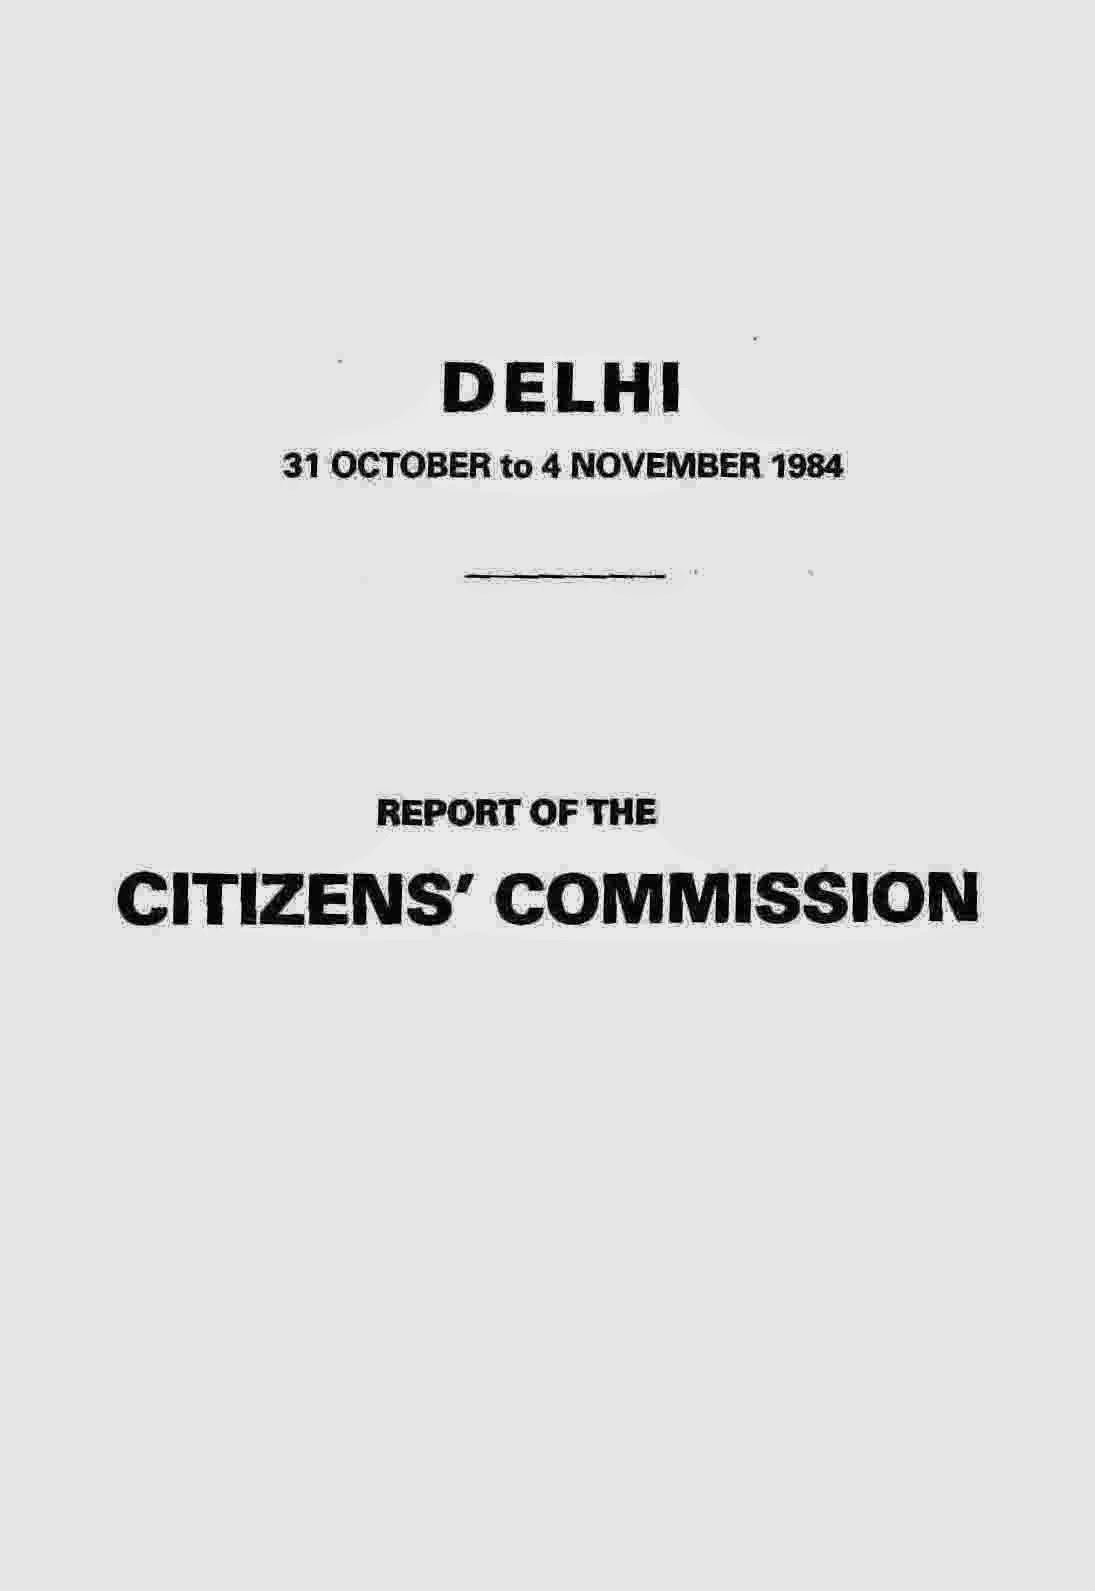 http://sikhdigitallibrary.blogspot.com/2015/08/delhi-31-october-to-4-november-1984.html